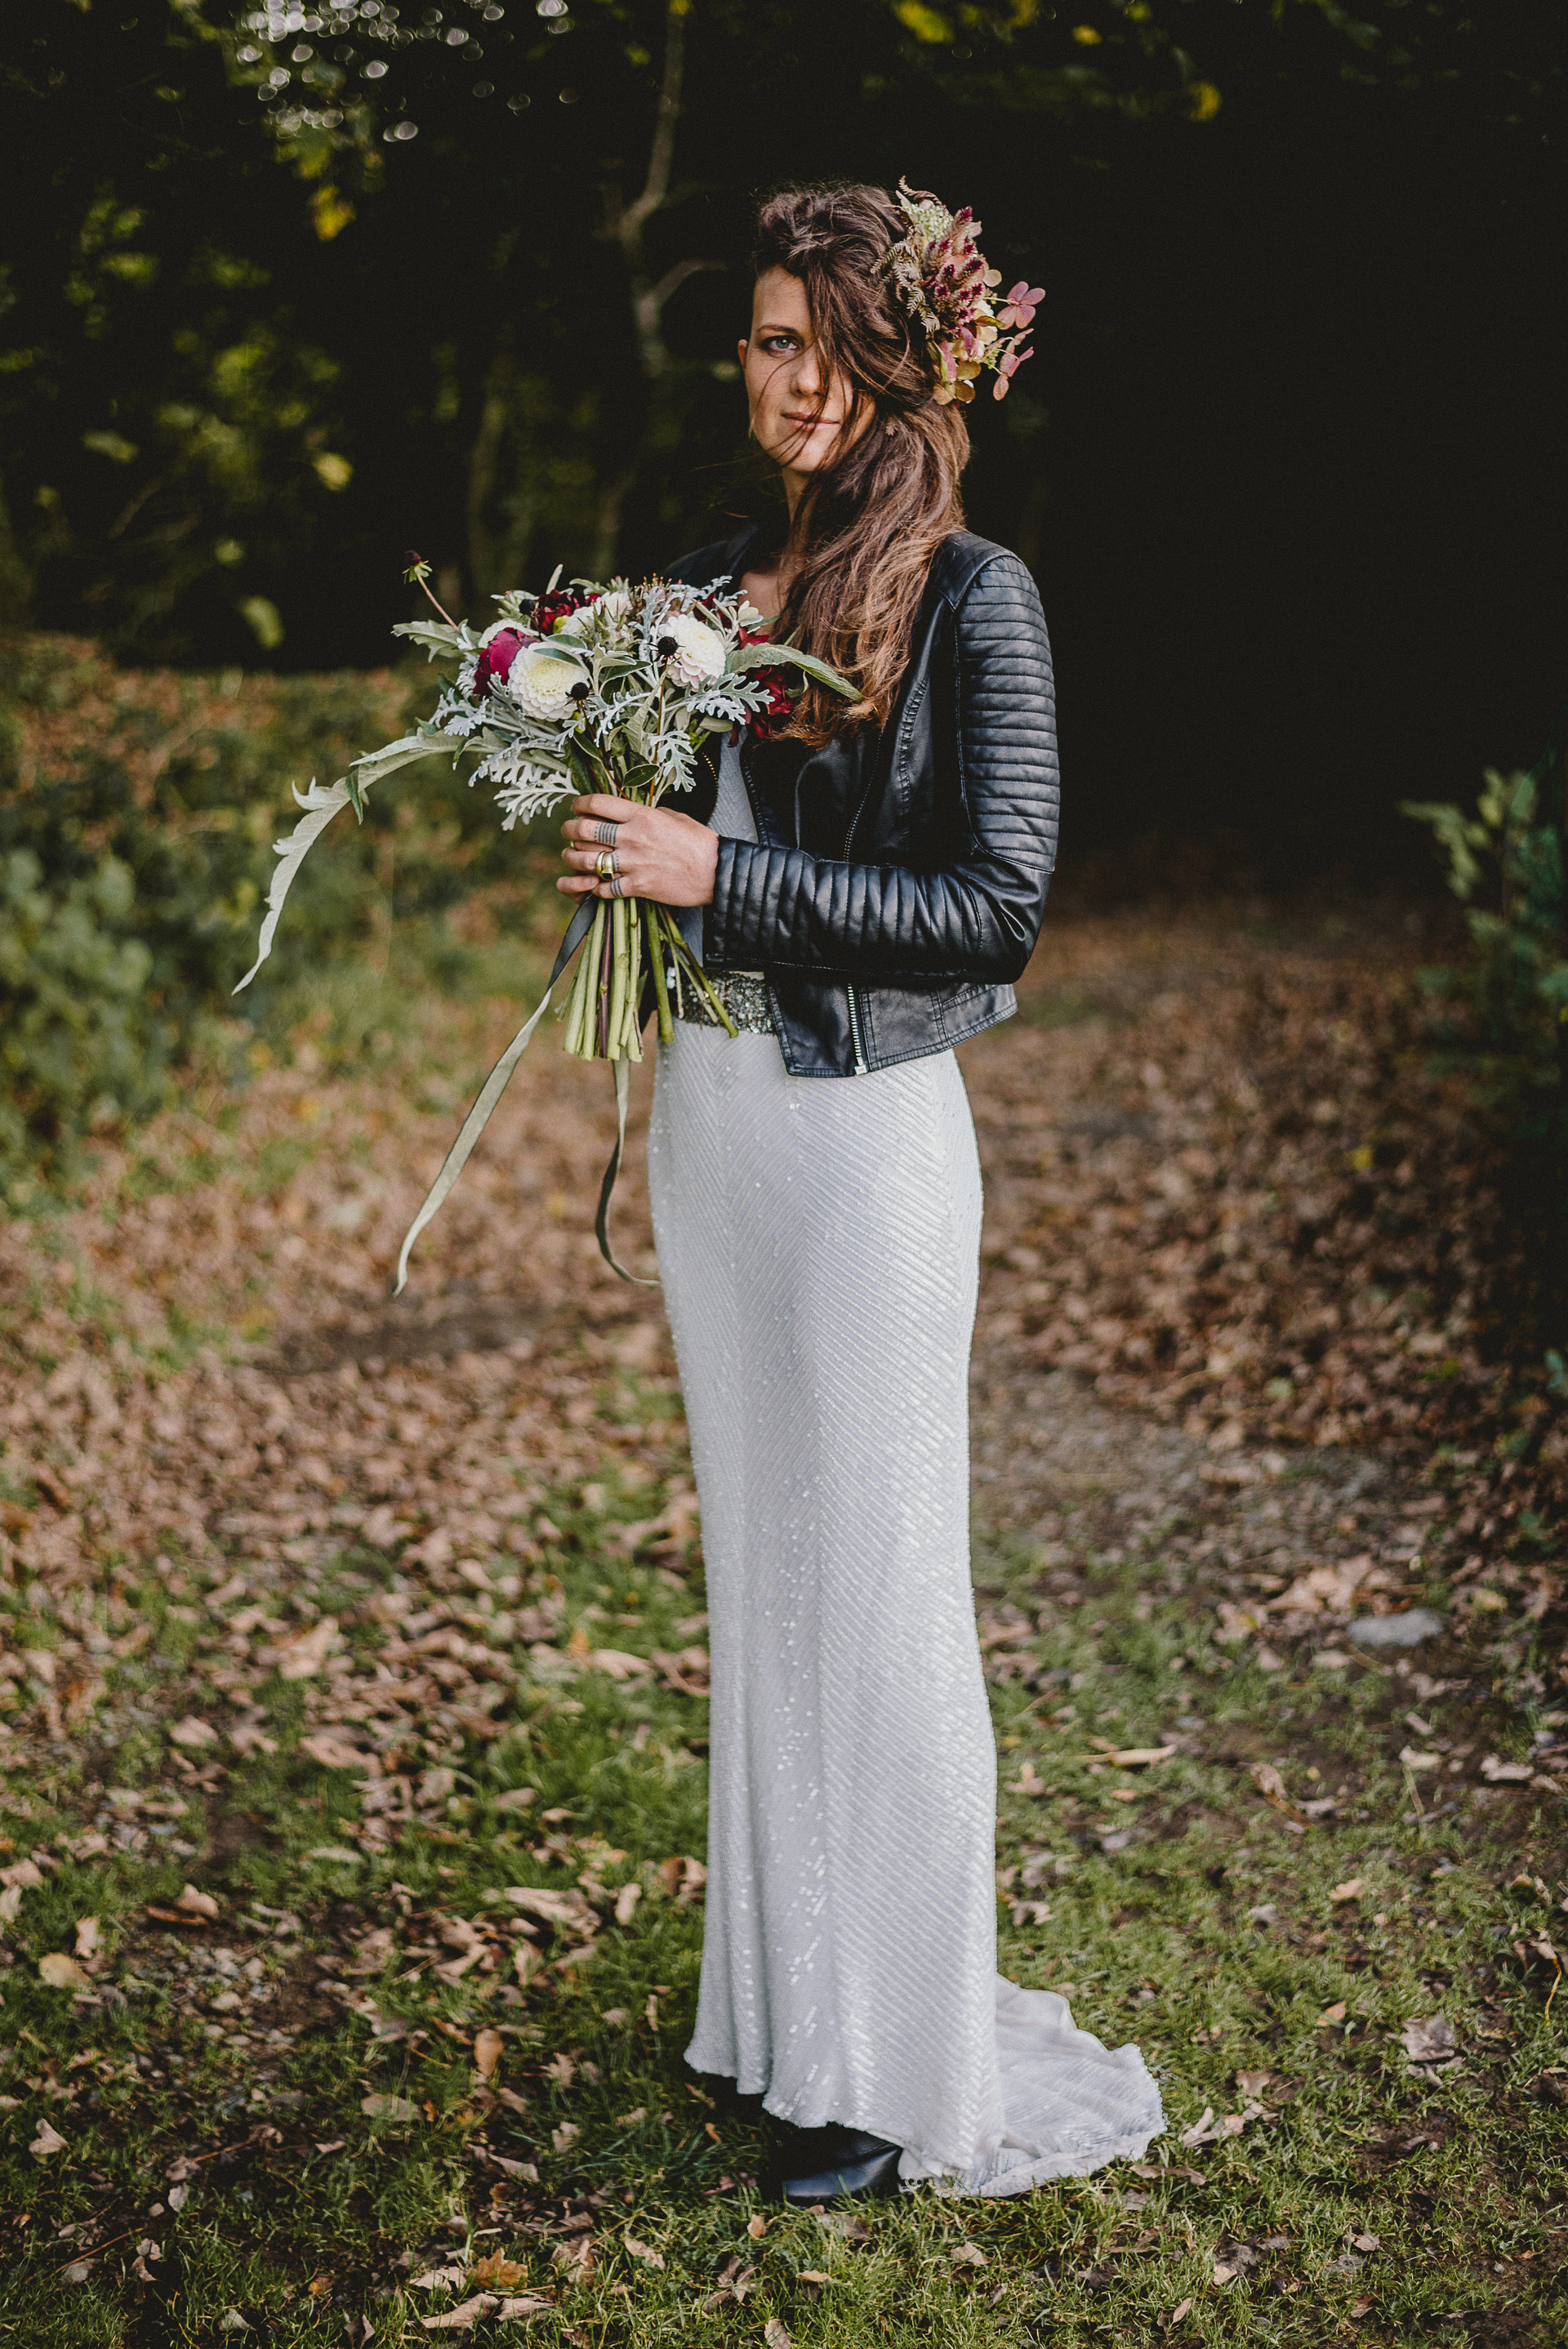 Bride standing outside holding a bouquet of flowers in whites and deep reds. she is wearing a beaded dress and a black leather jacket. she has pink wild flowers in her hair.